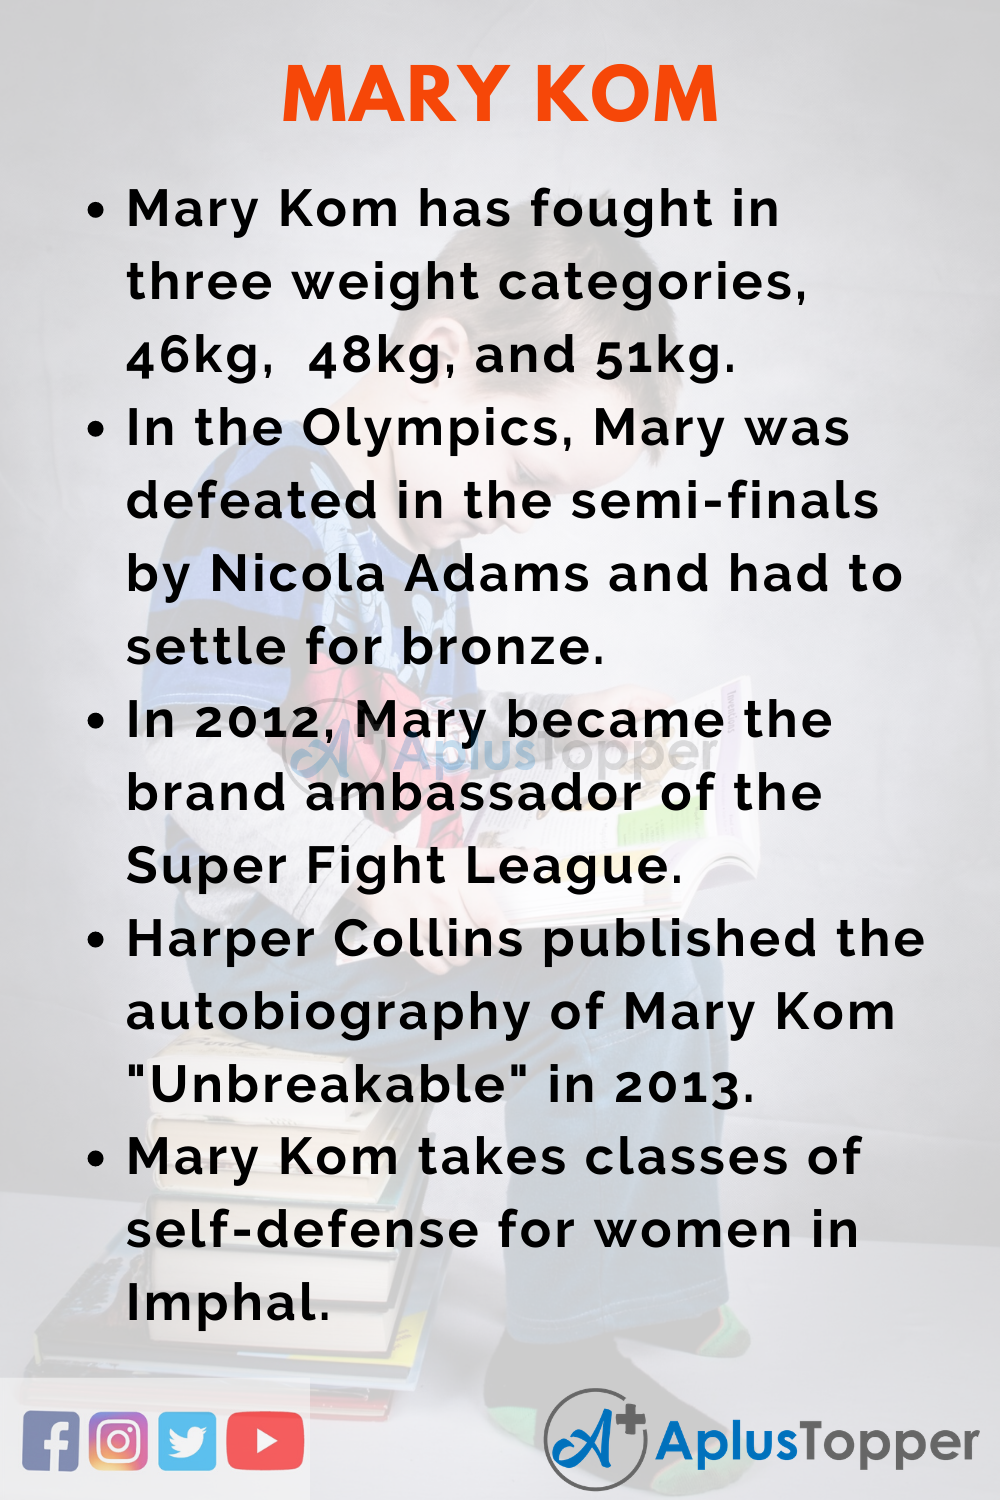 10 Lines on Mary Kom for Higher Class Students